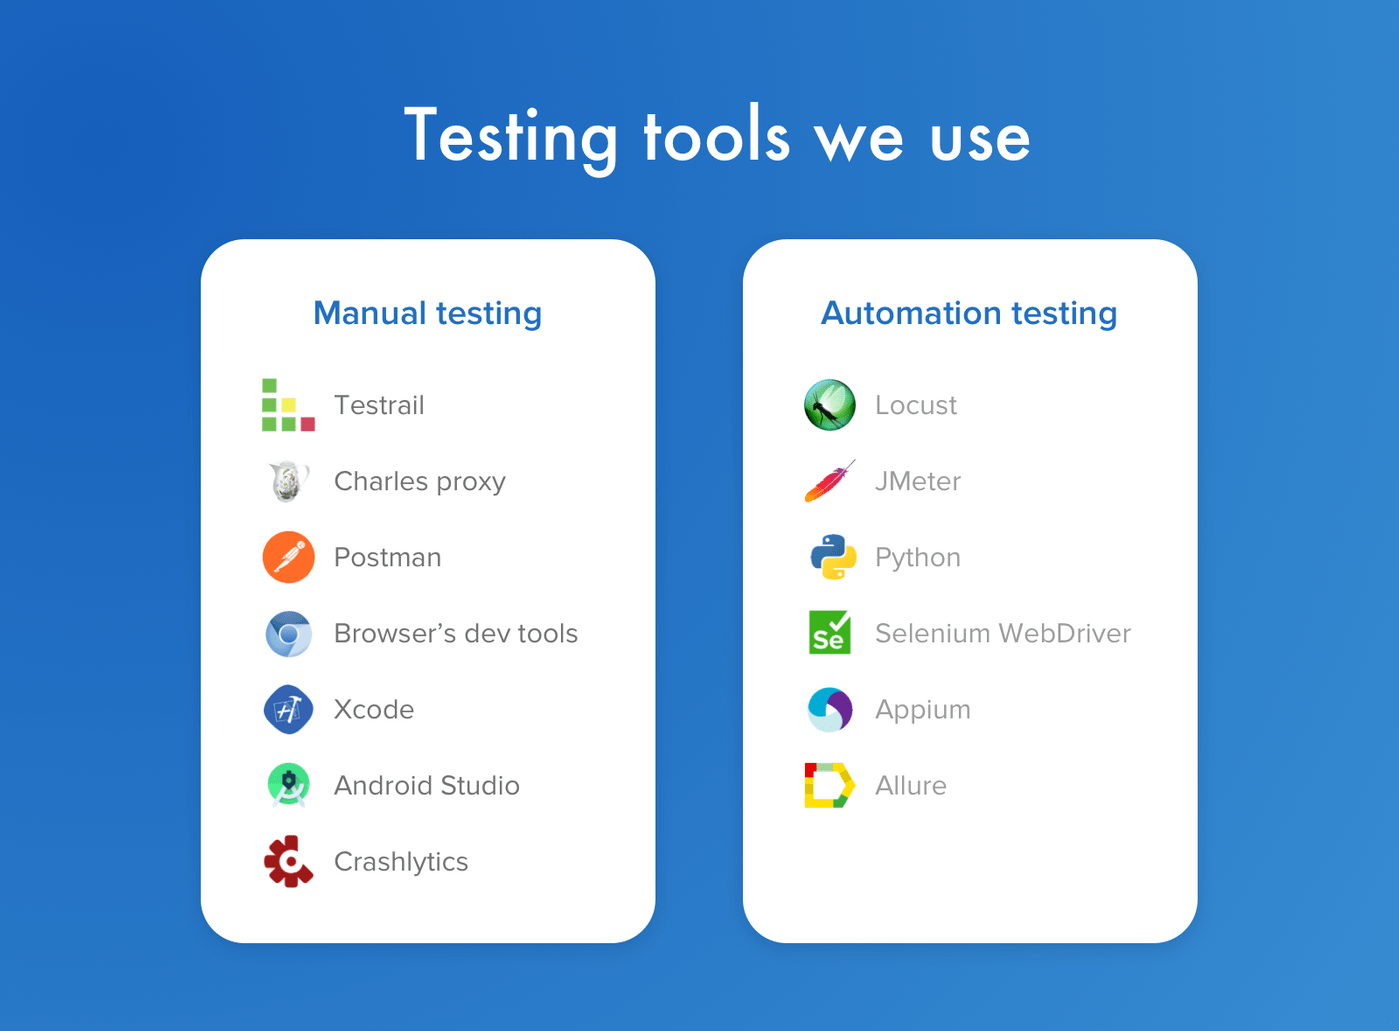 Testing tools used at Cleveroad